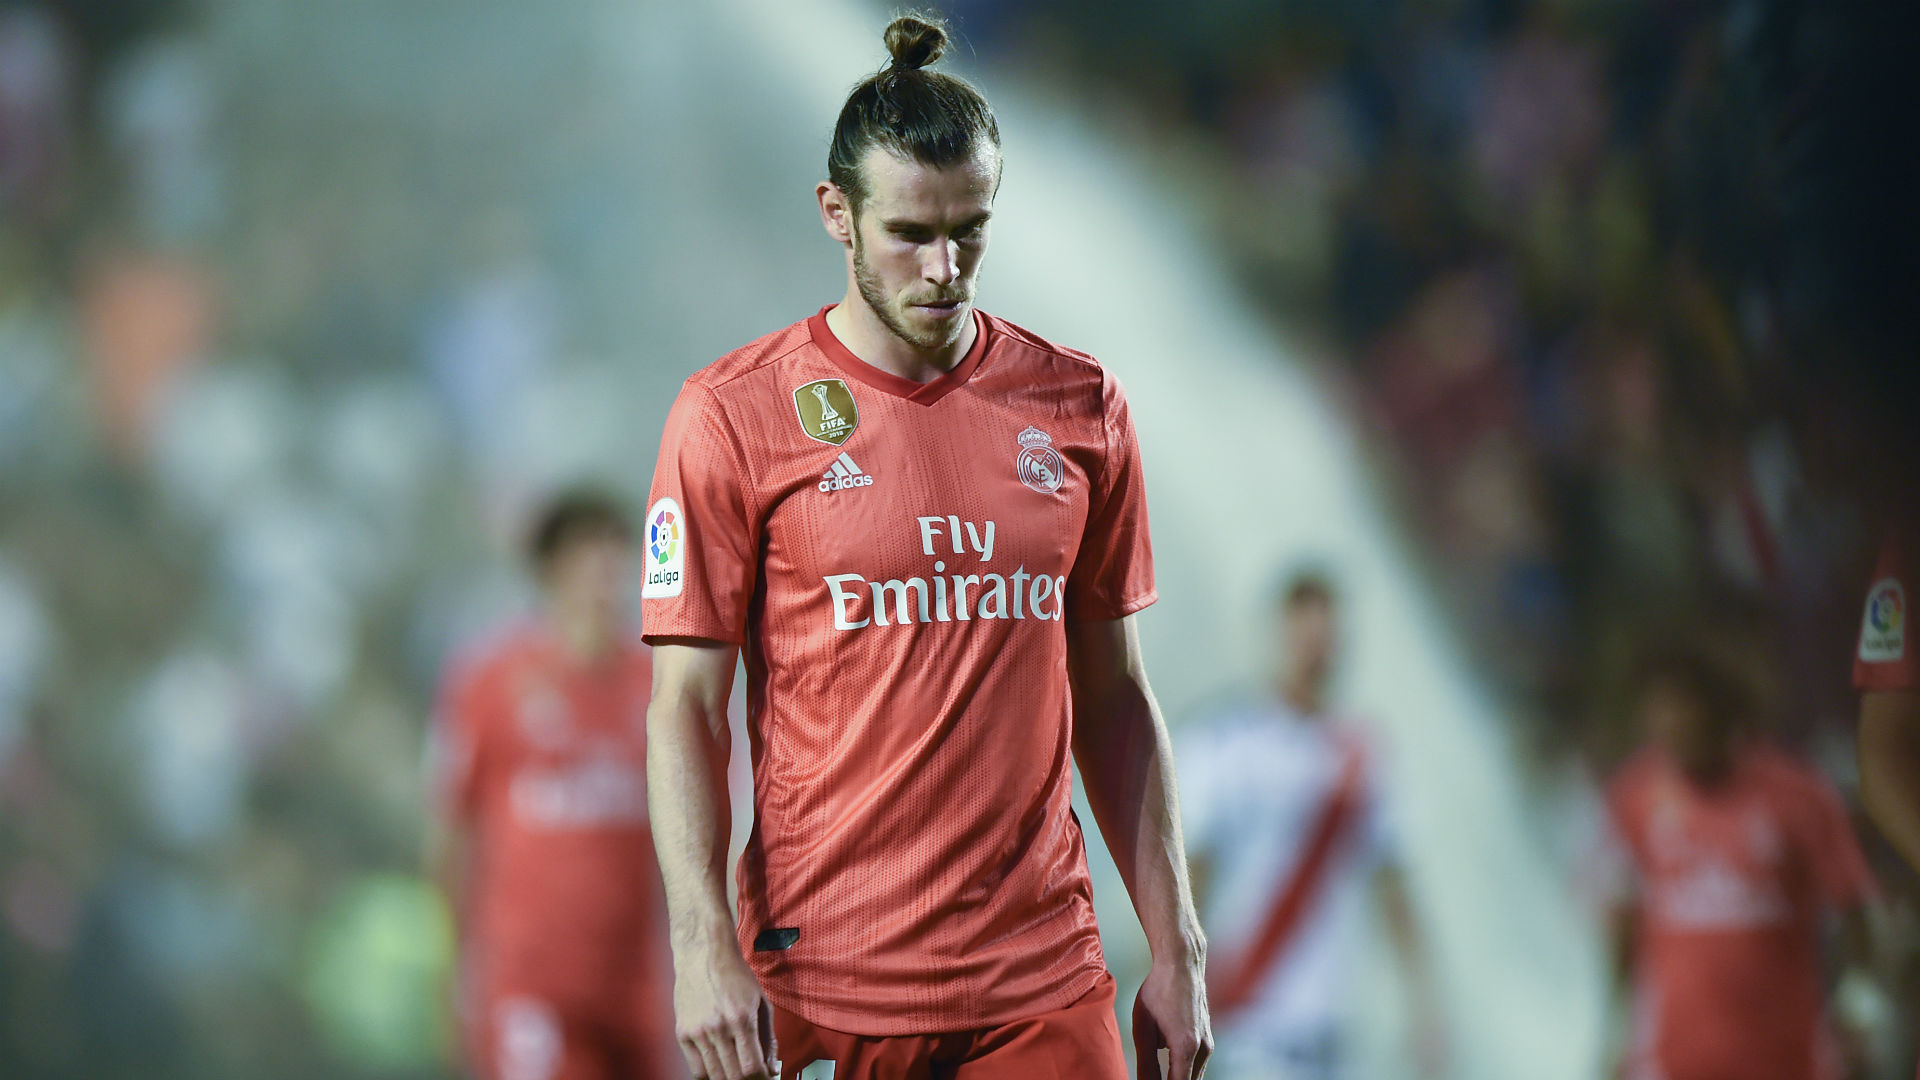 Bale 'very unlikely' to join Man United as agent rules out loan move